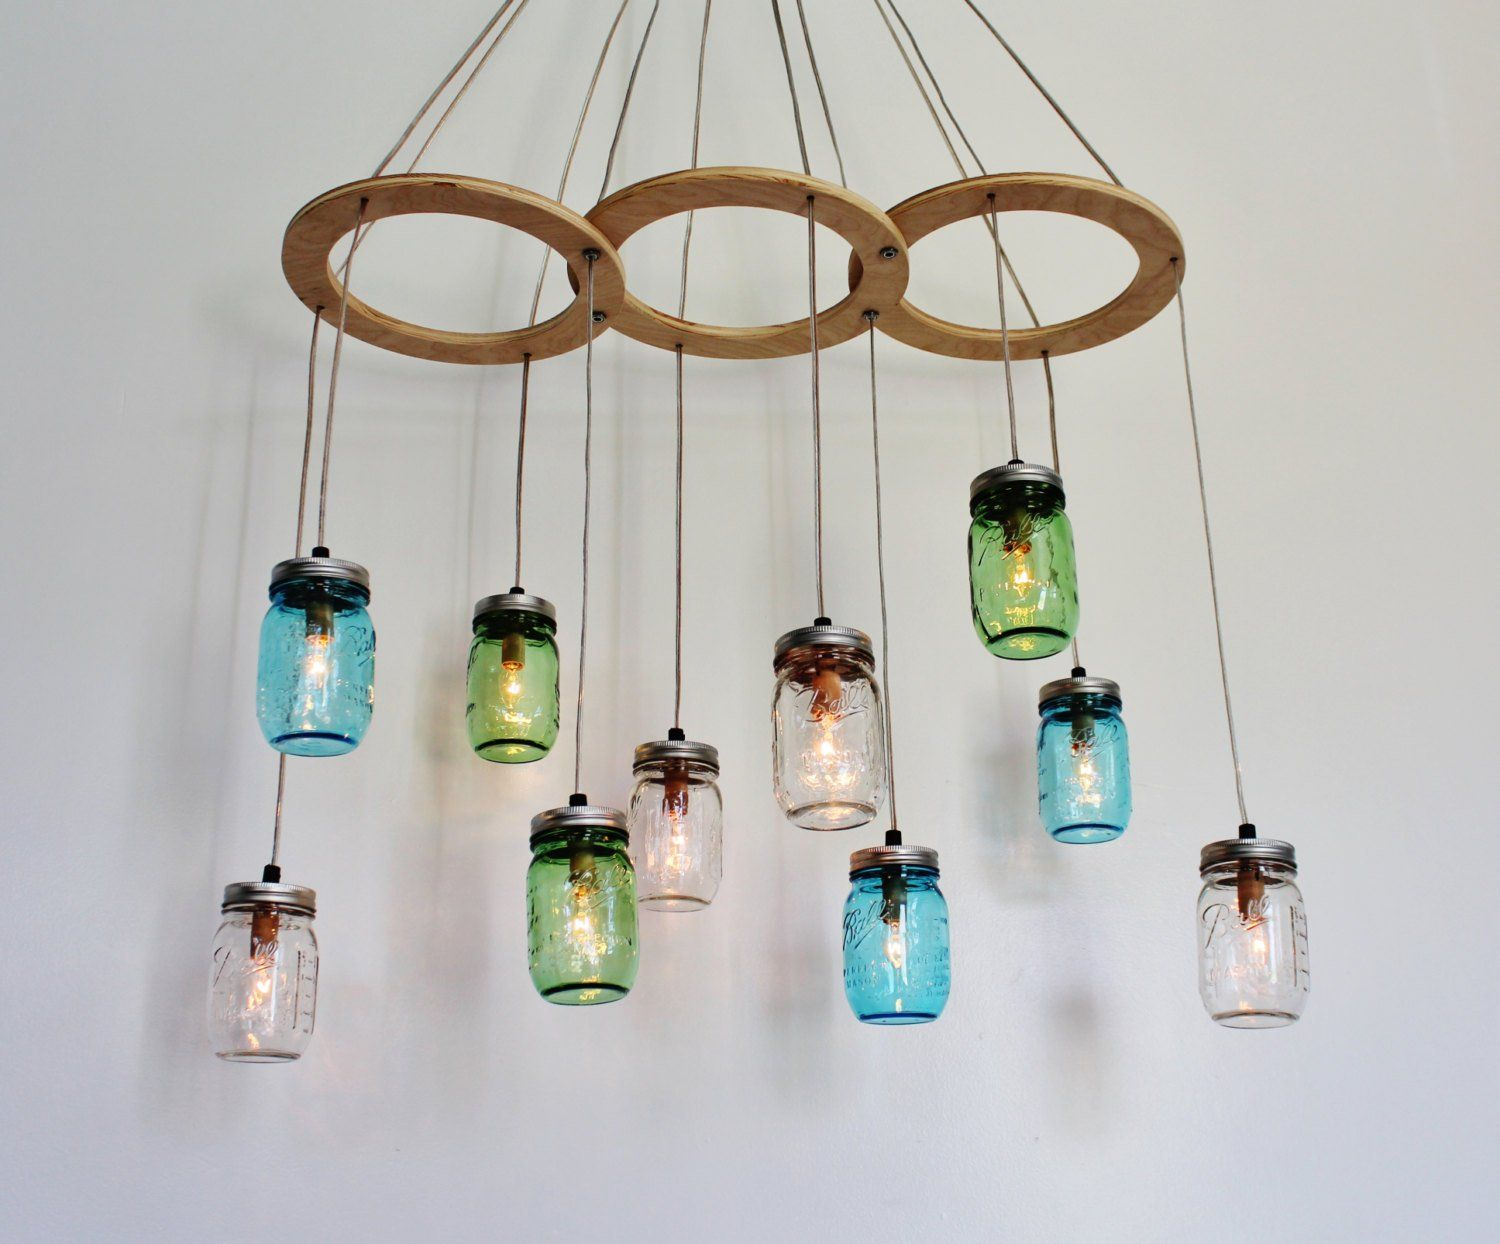 Furniture creative diy upcycled hanging glass chandelier lighting creative diy upcycled hanging glass chandelier lighting for rustic farmhouse dining table or kitchen spaces ideas farmhouse chandelier furniture mozeypictures Image collections